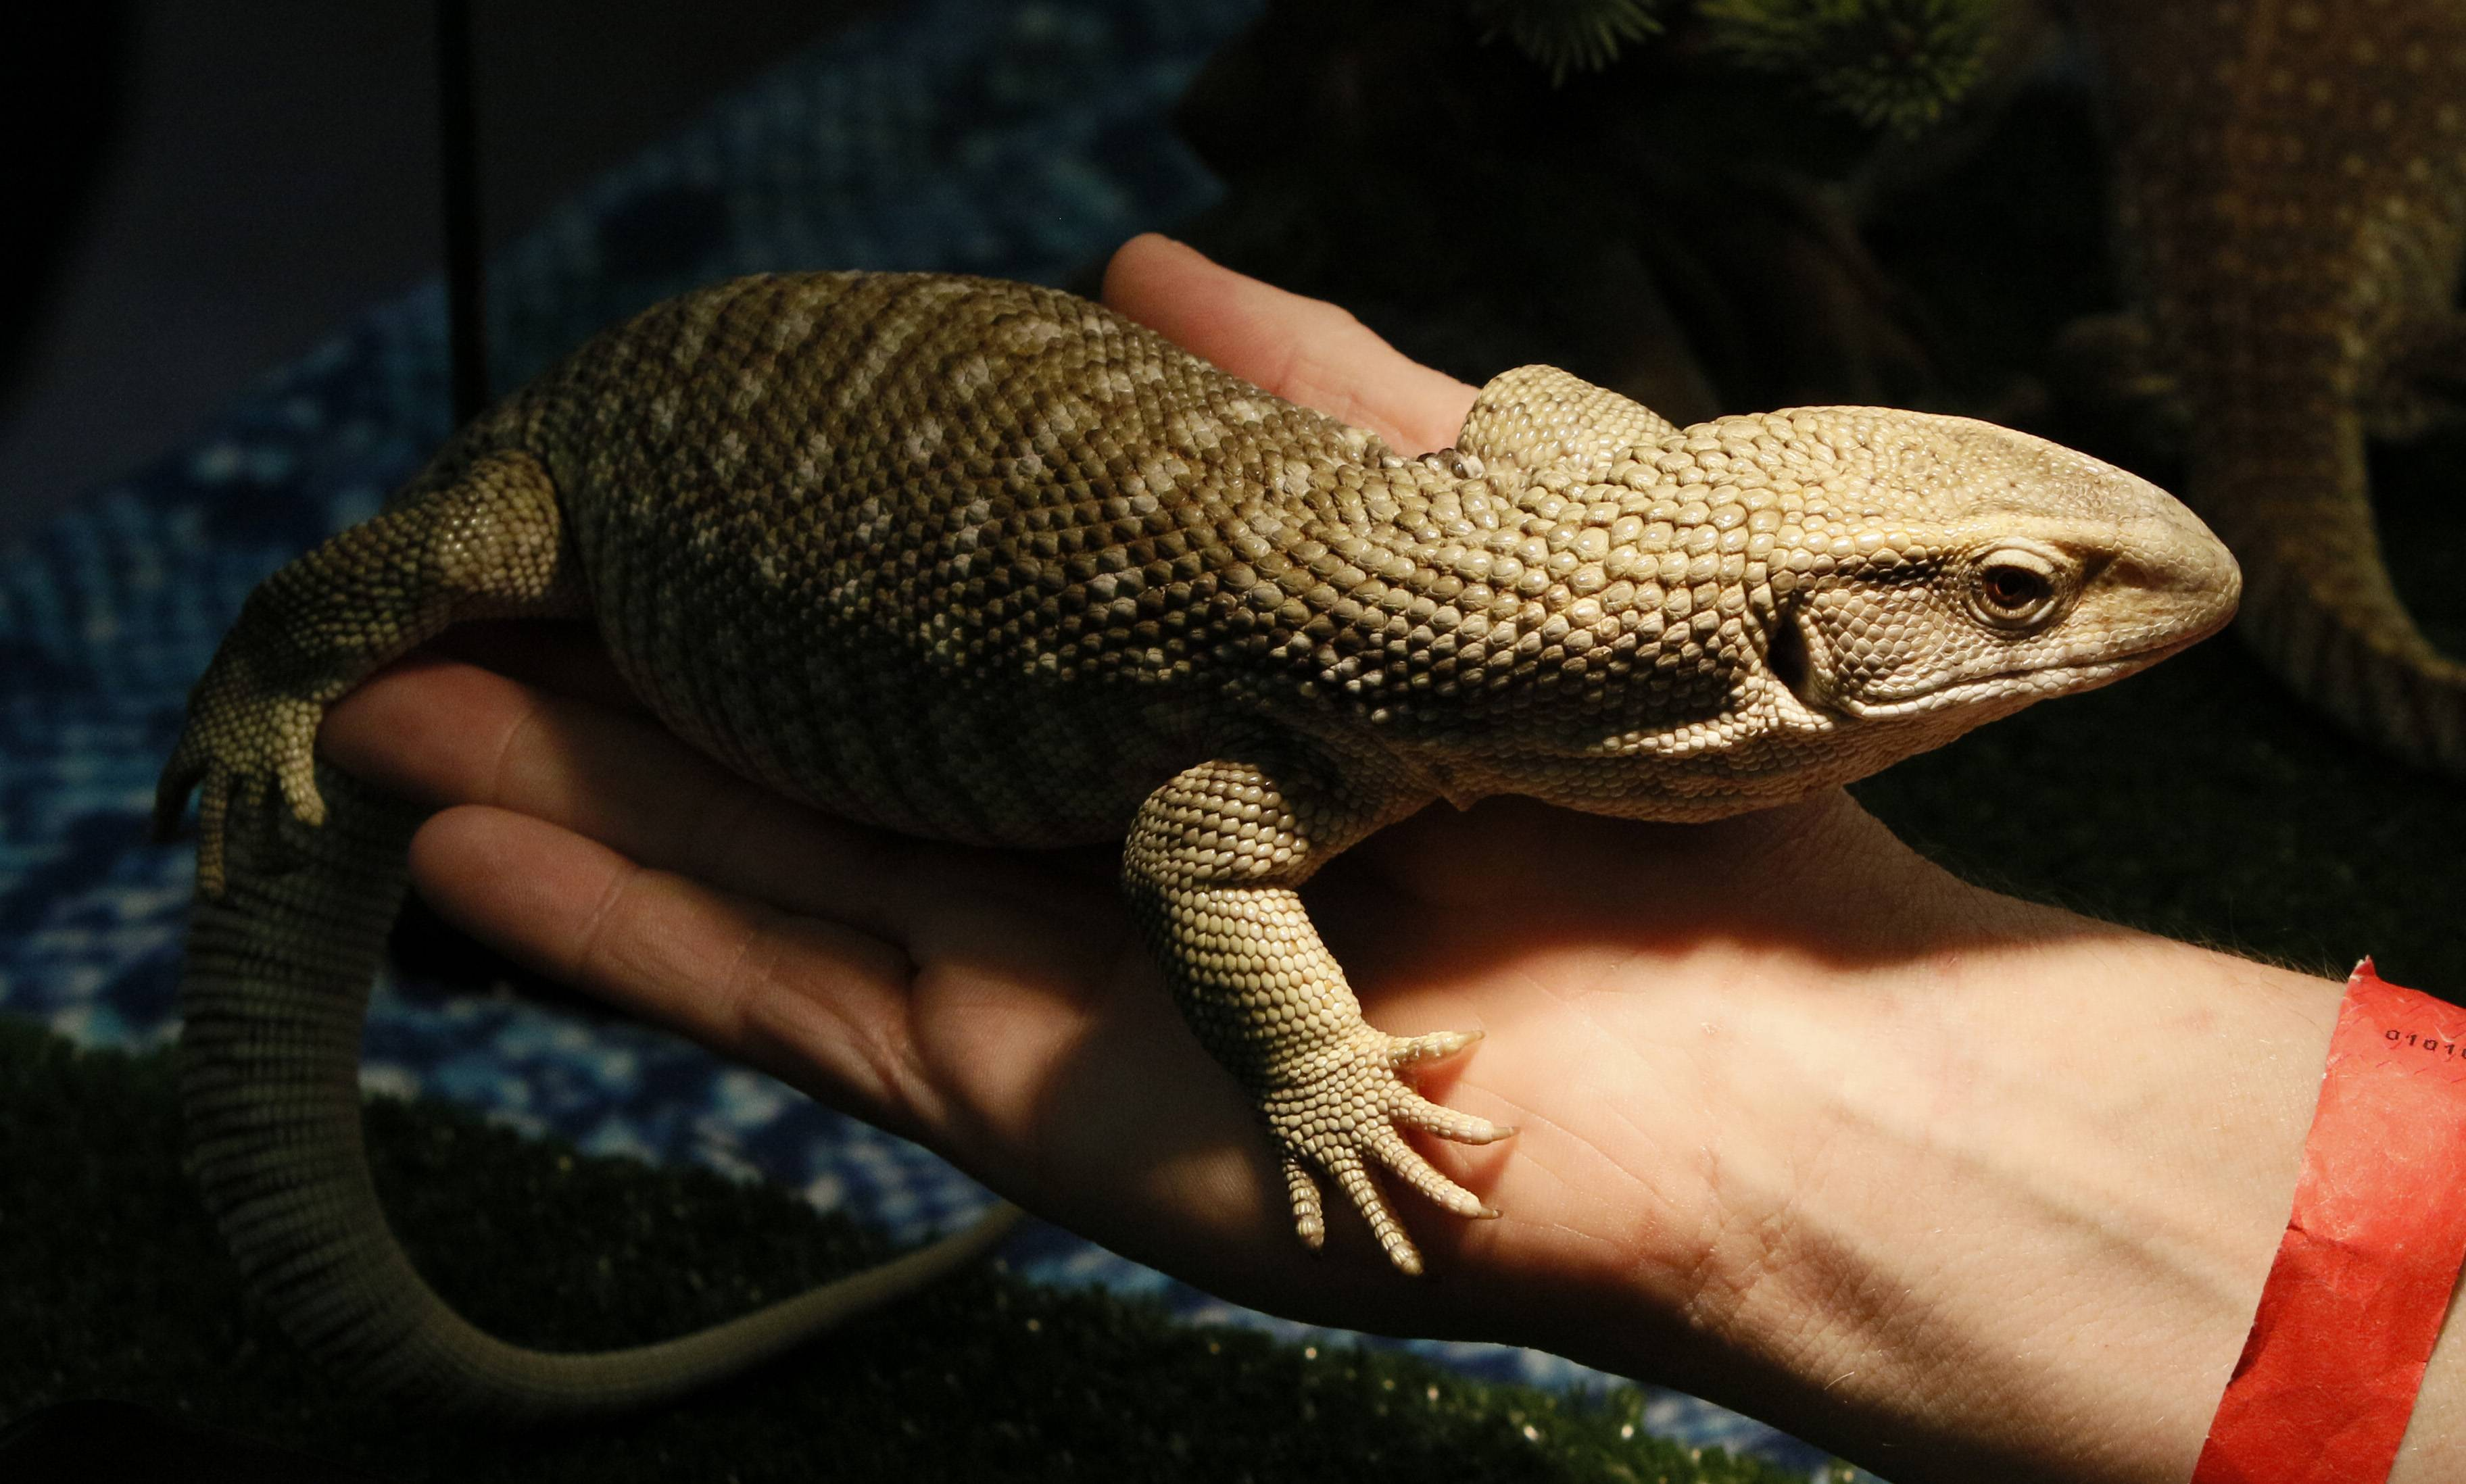 Interact with reptiles and more during the Chicago Pet Show at the Kane County Fairgrounds this weekend.